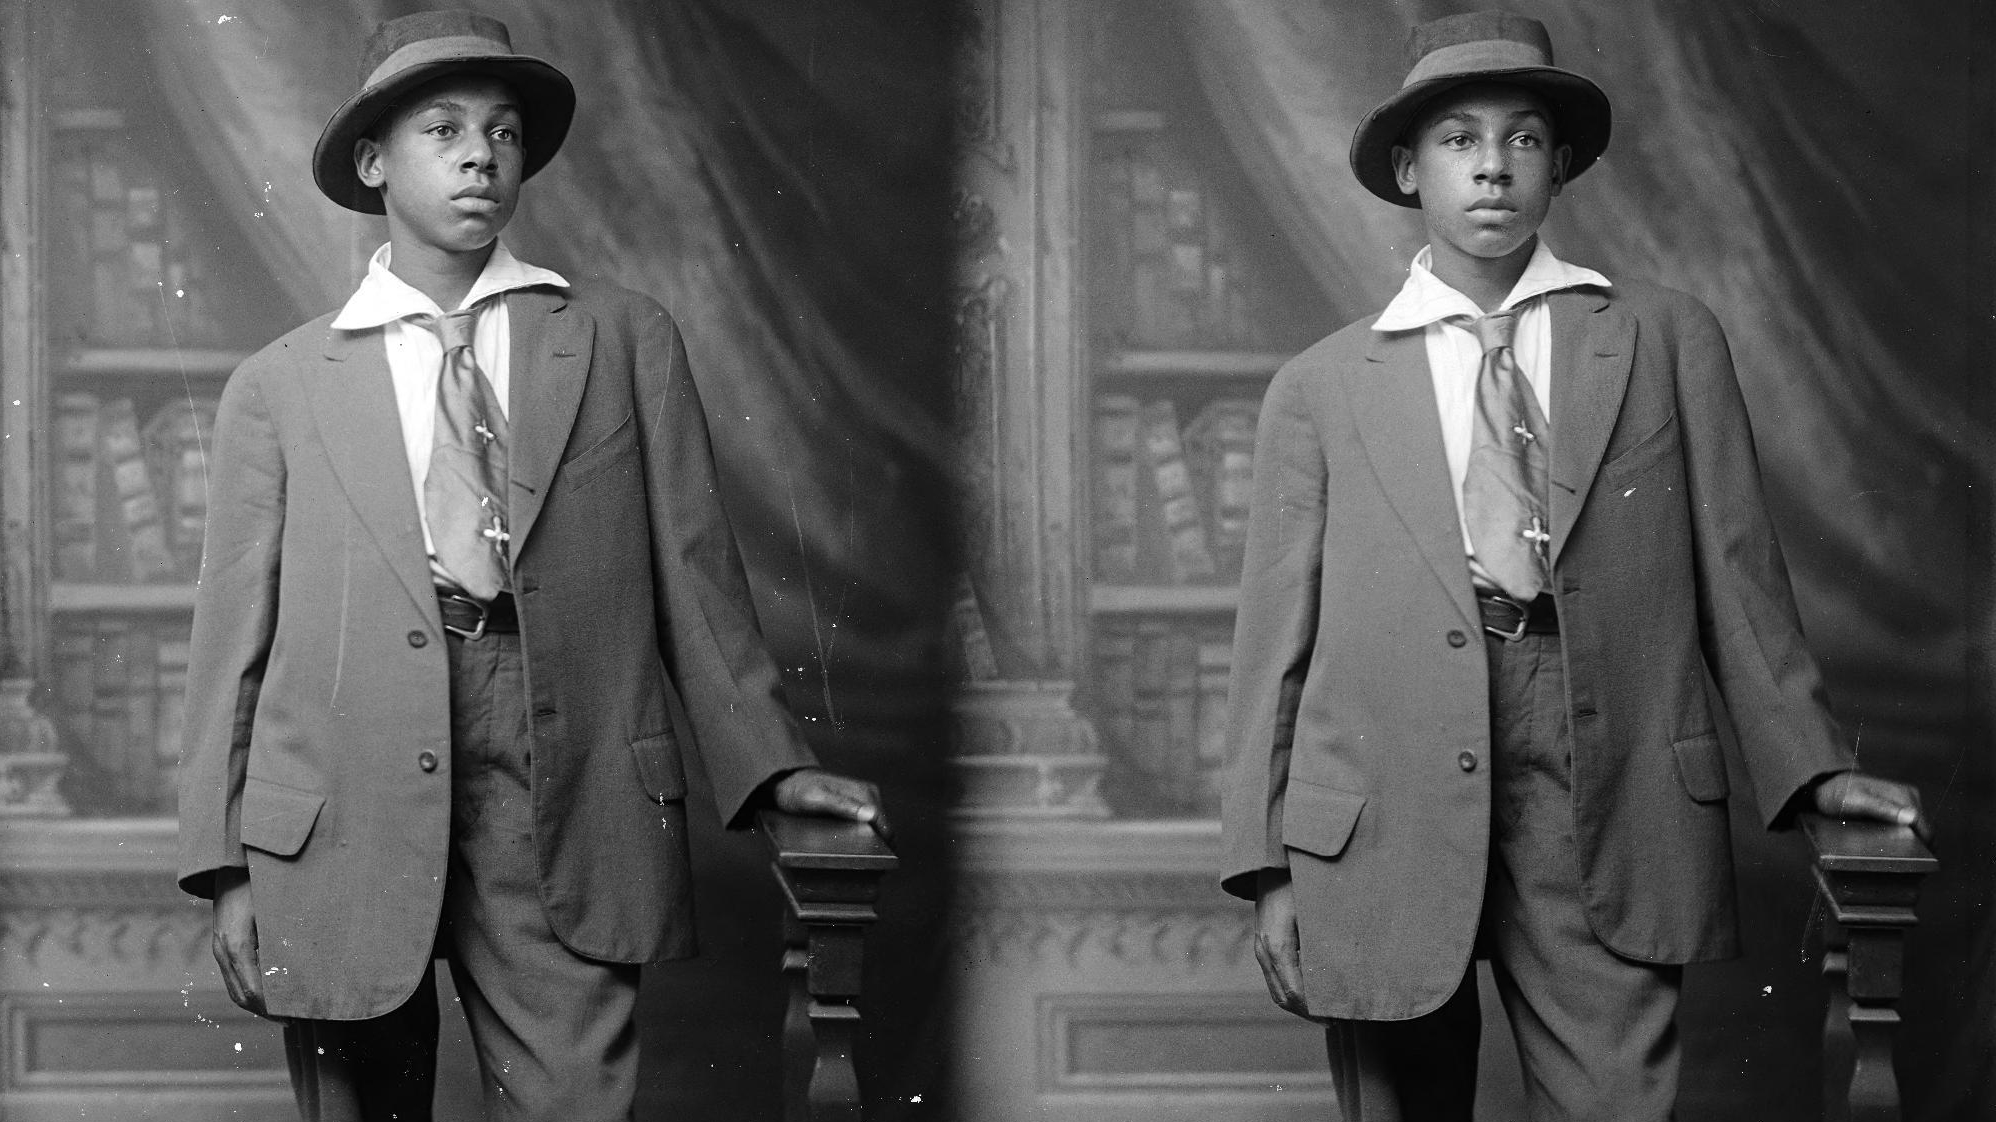 The Holsinger Collection holds 500 portraits of local African-American citizens such as this one taken of Daniel Brown in 1915. Located in U.Va.'s Special Collections Library, the collection is the focus of a conference and future exhibition organized by